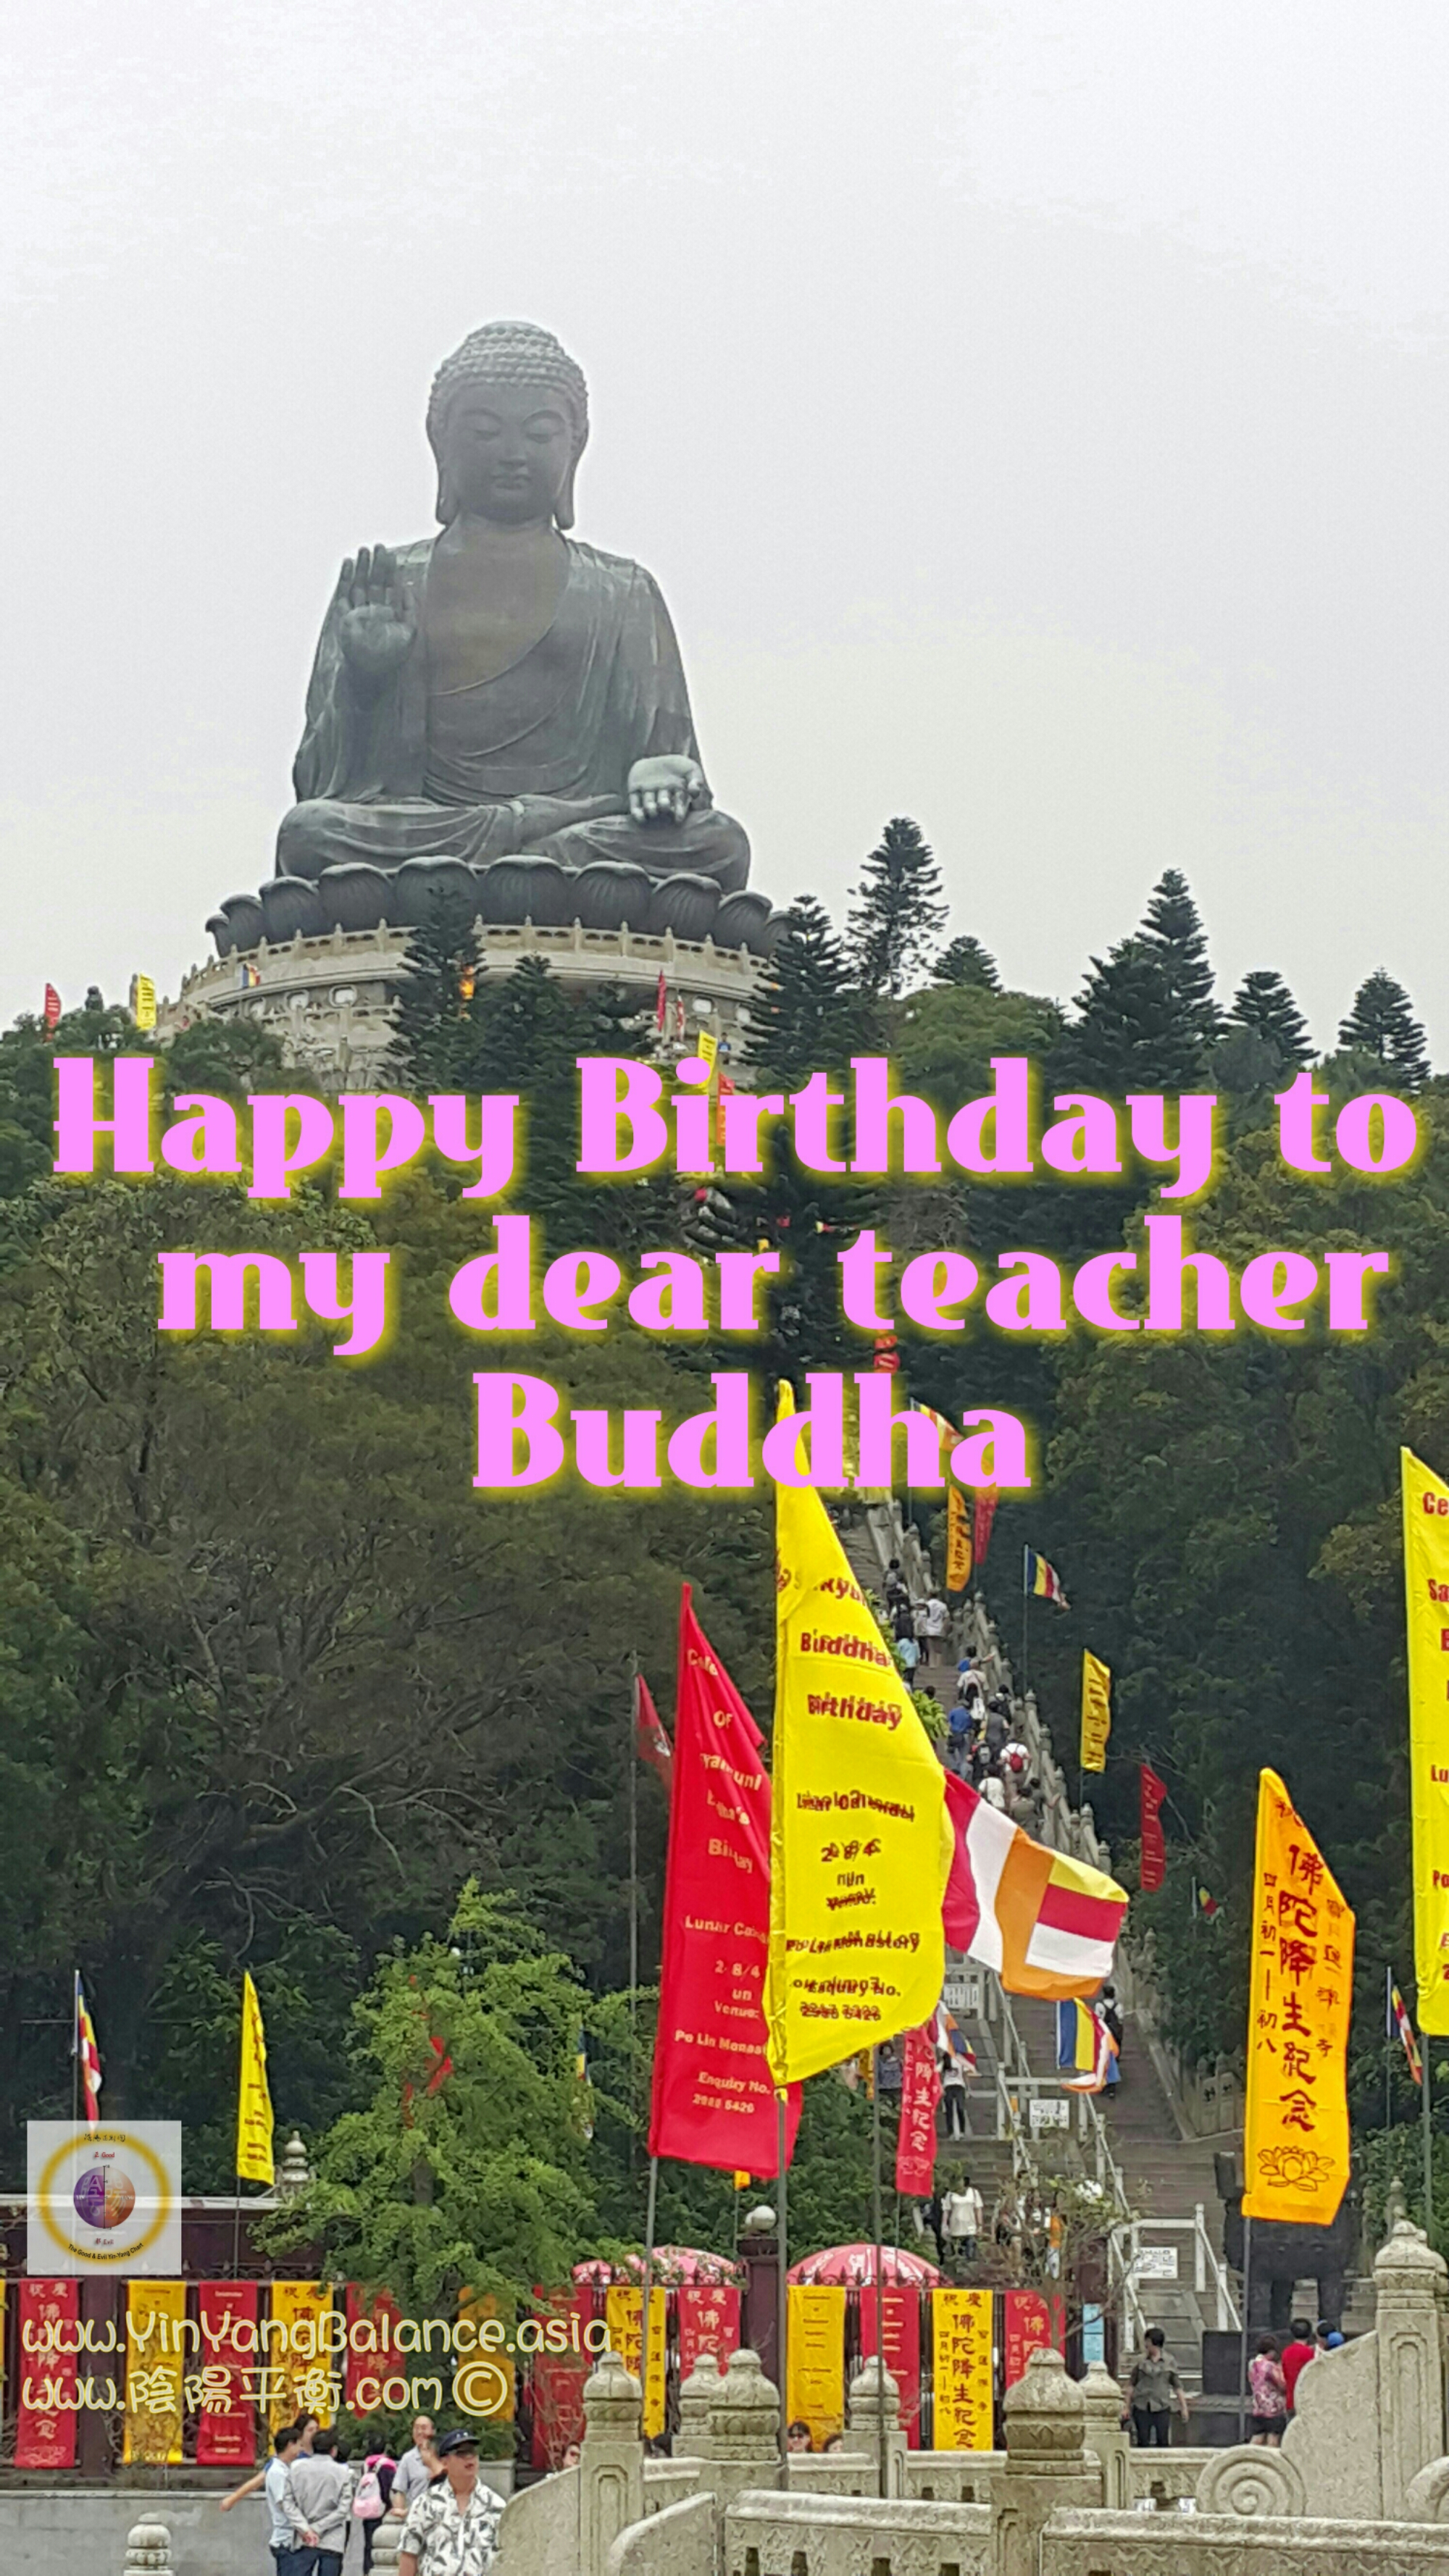 Happy Birthday to my dear teacher Buddha